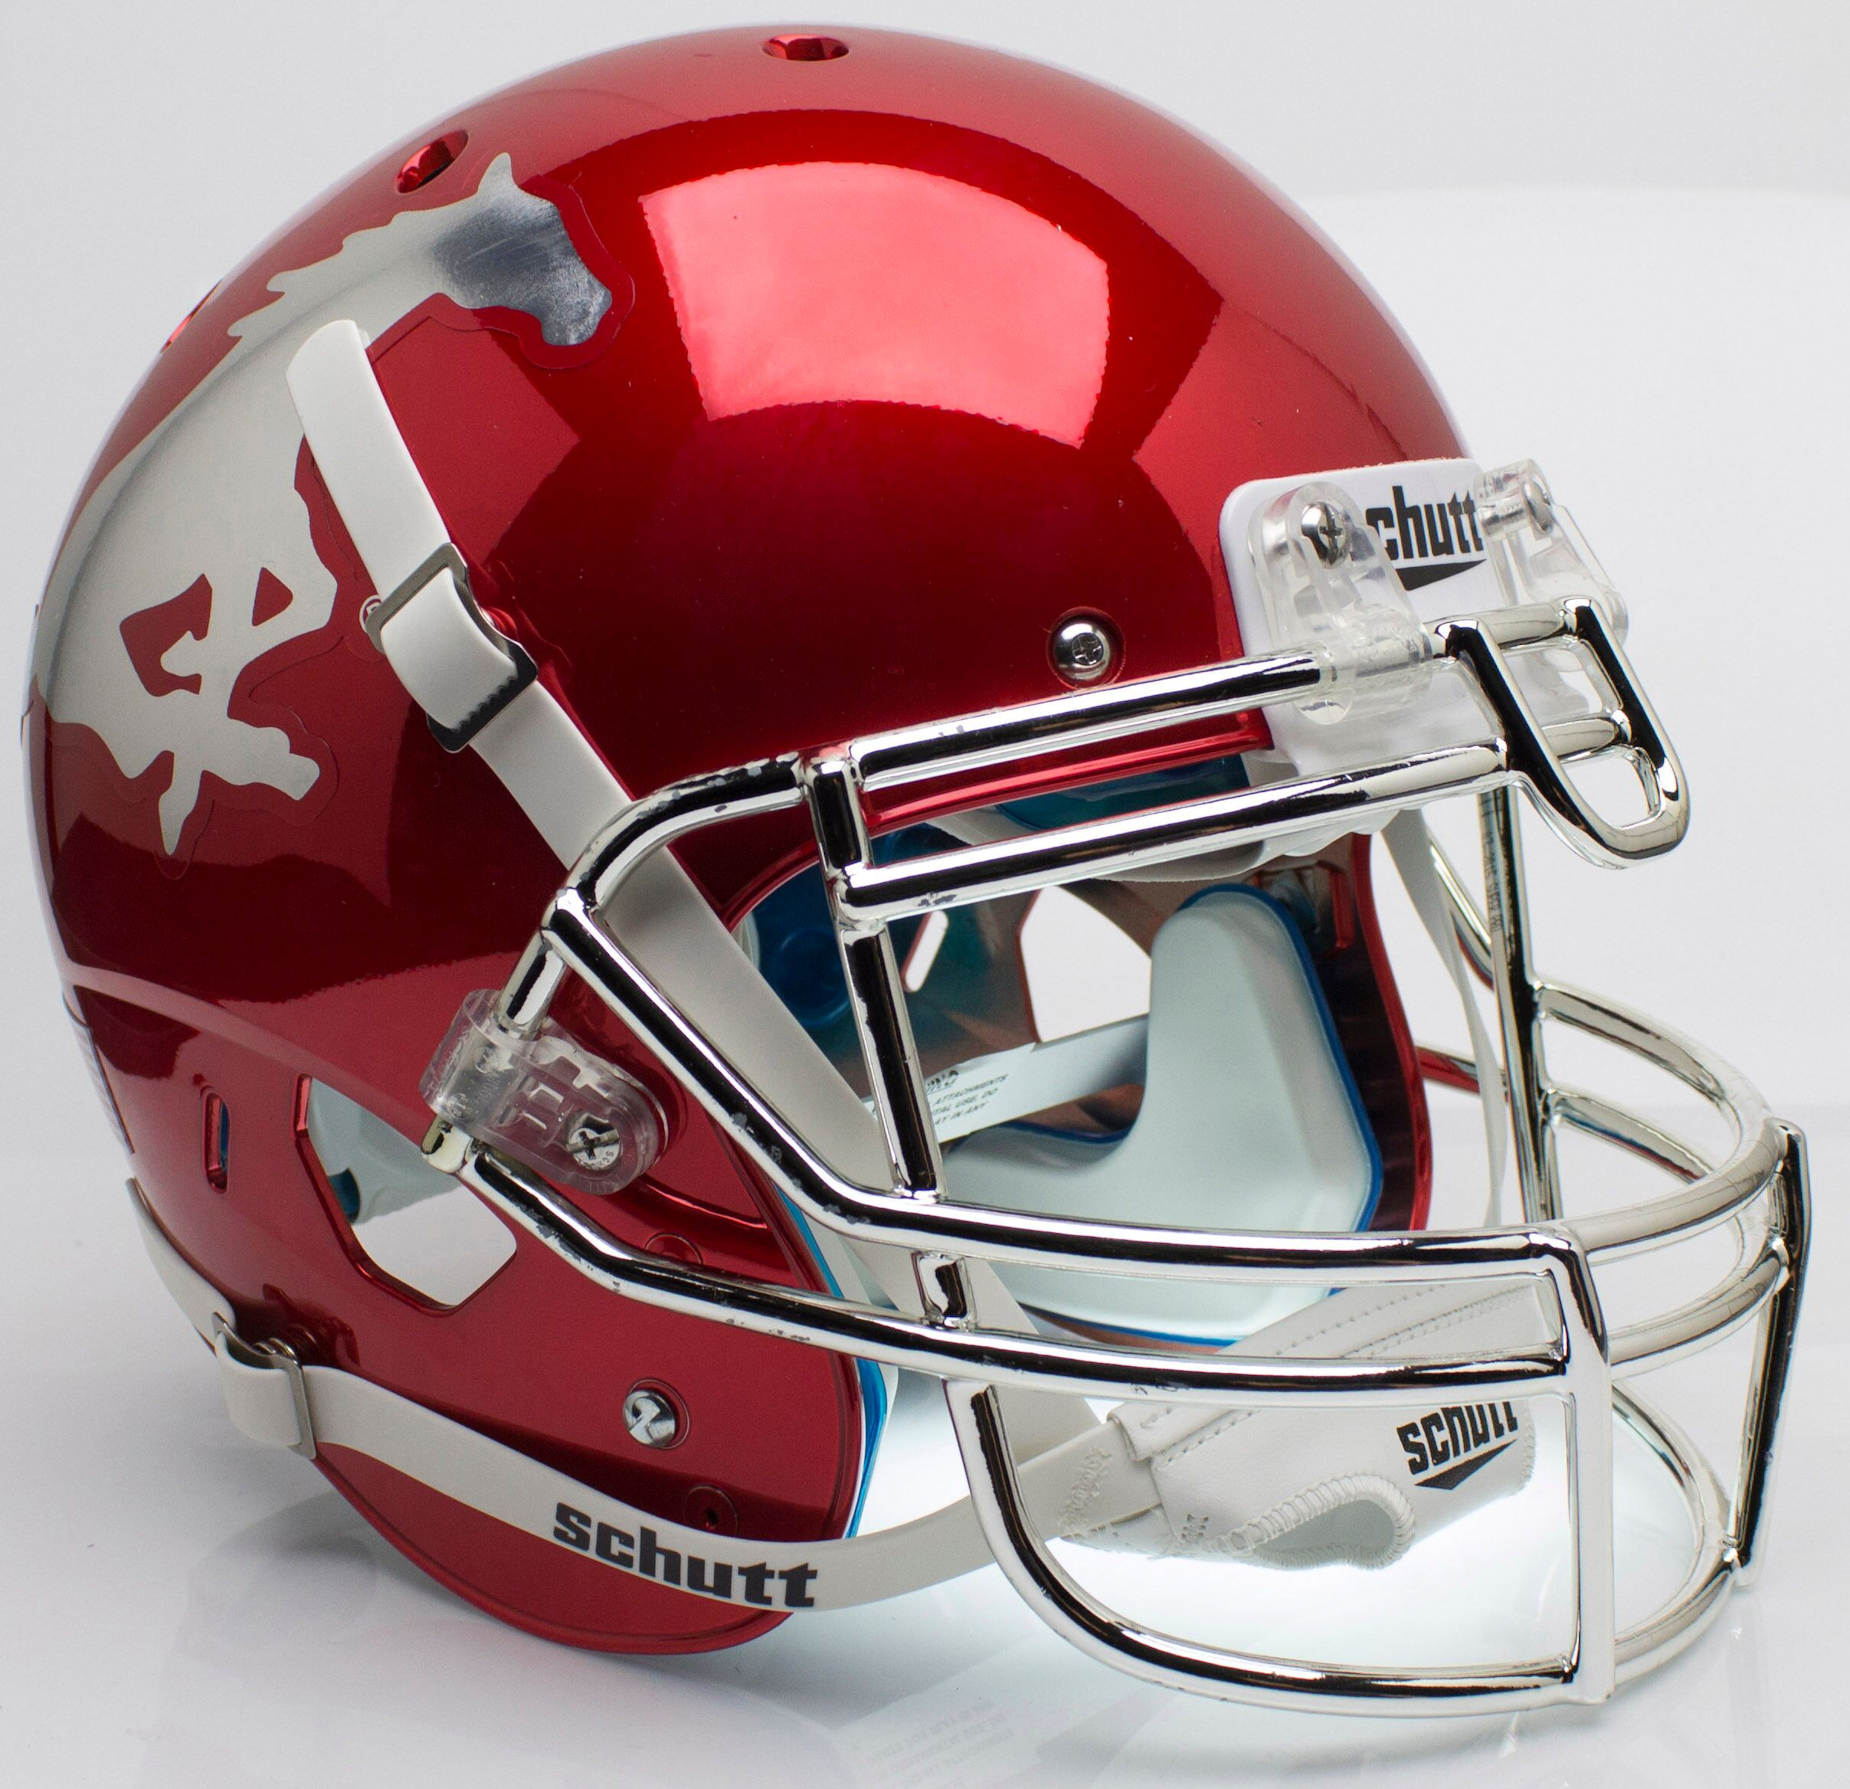 Southern Methodist (SMU) Mustangs Authentic College XP Football Helmet Schutt <B>Red Chrome With Chrome Mask</B>